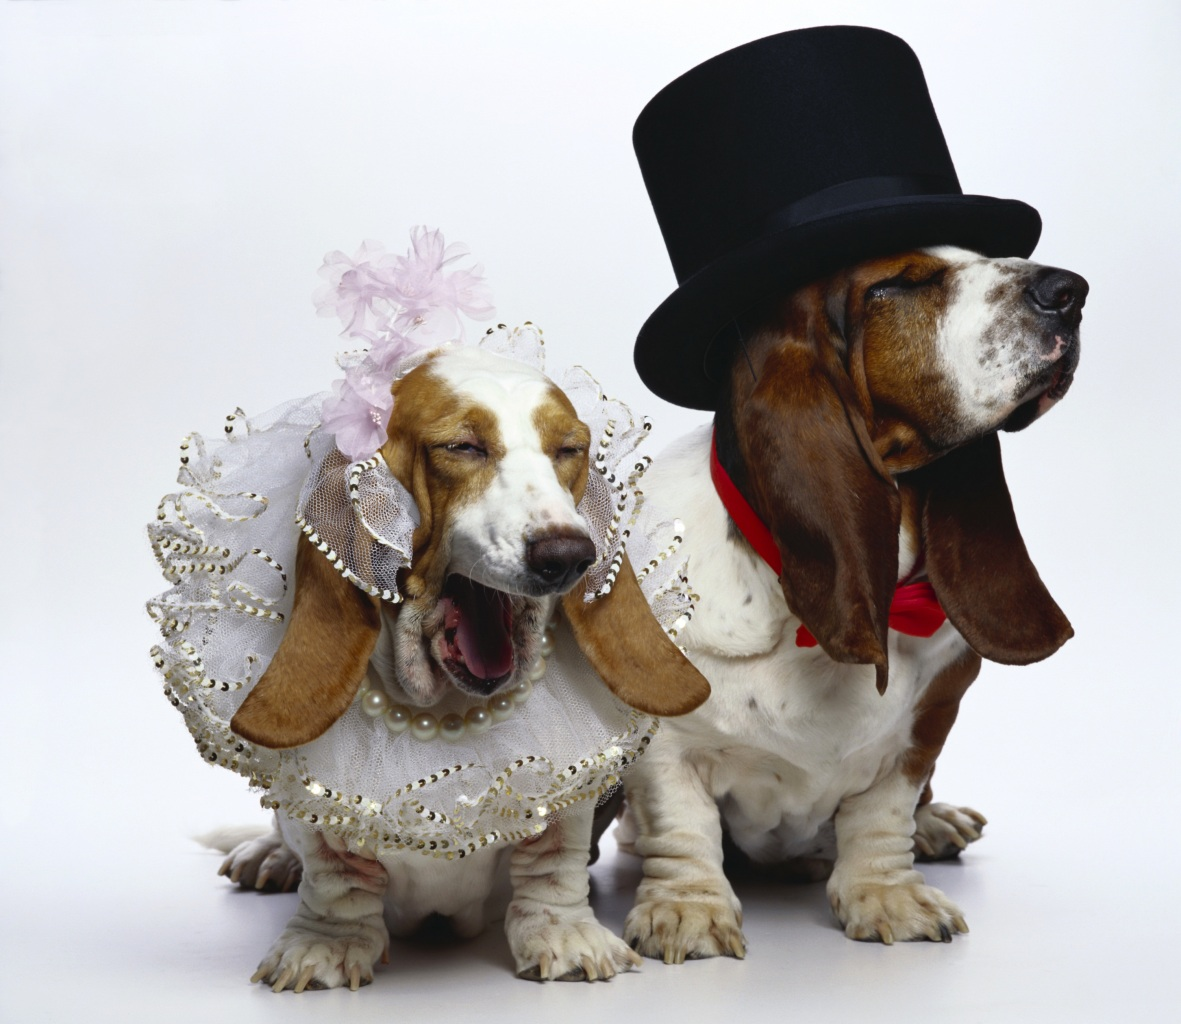 Dogs_Basset_Hound_Two_442503.jpg